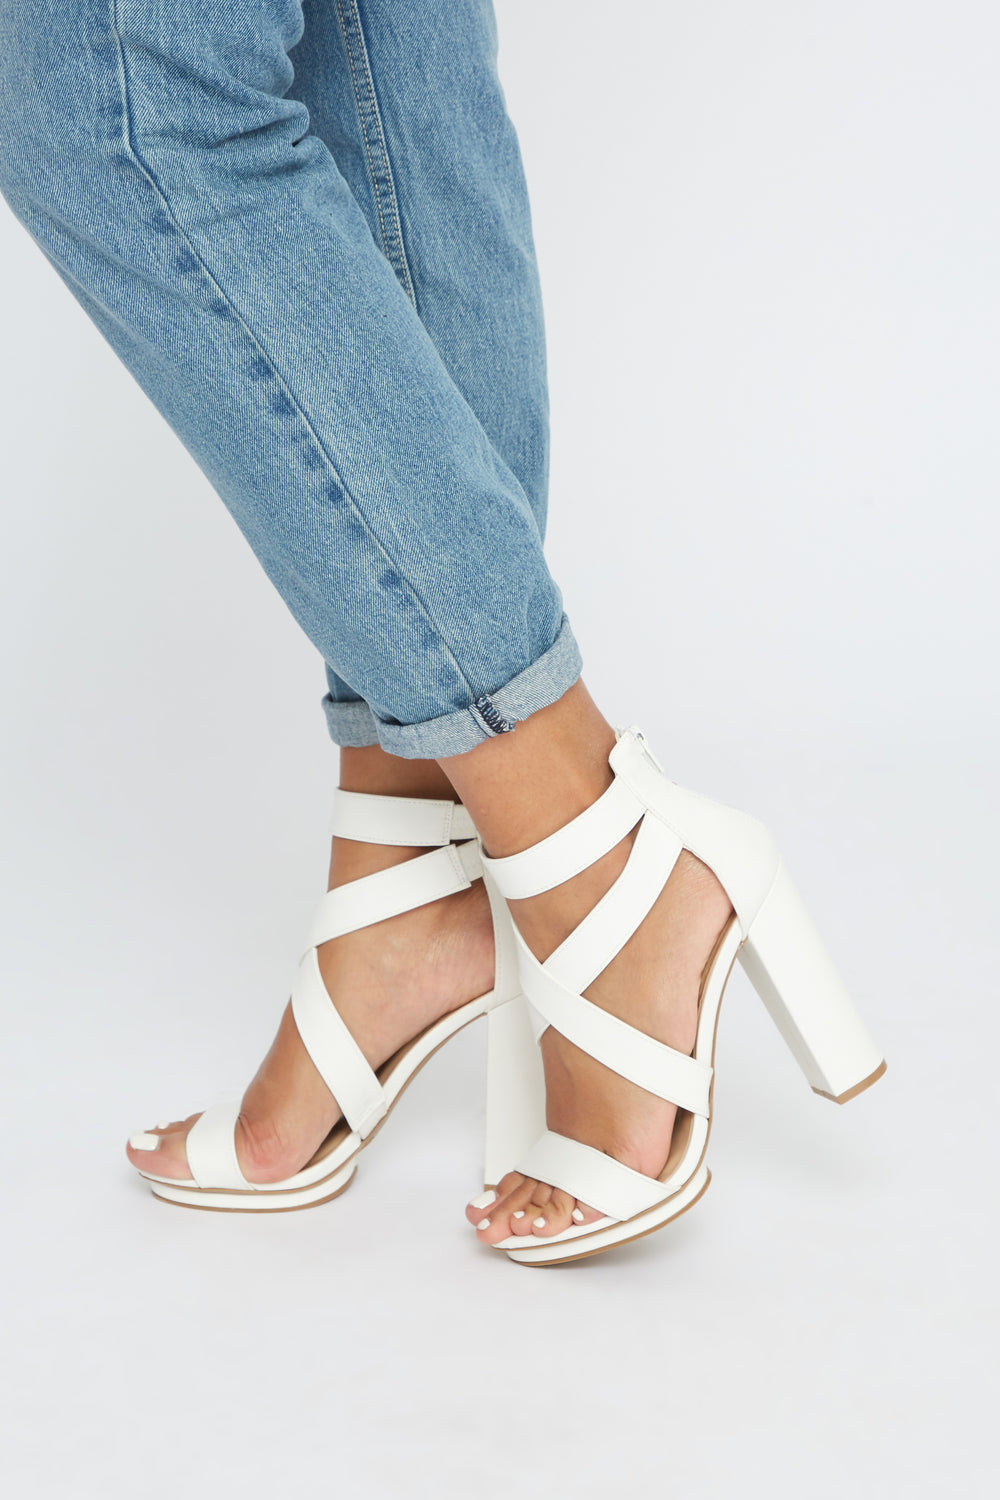 Cross Strap Faux-Leather Block Heel Sandal White